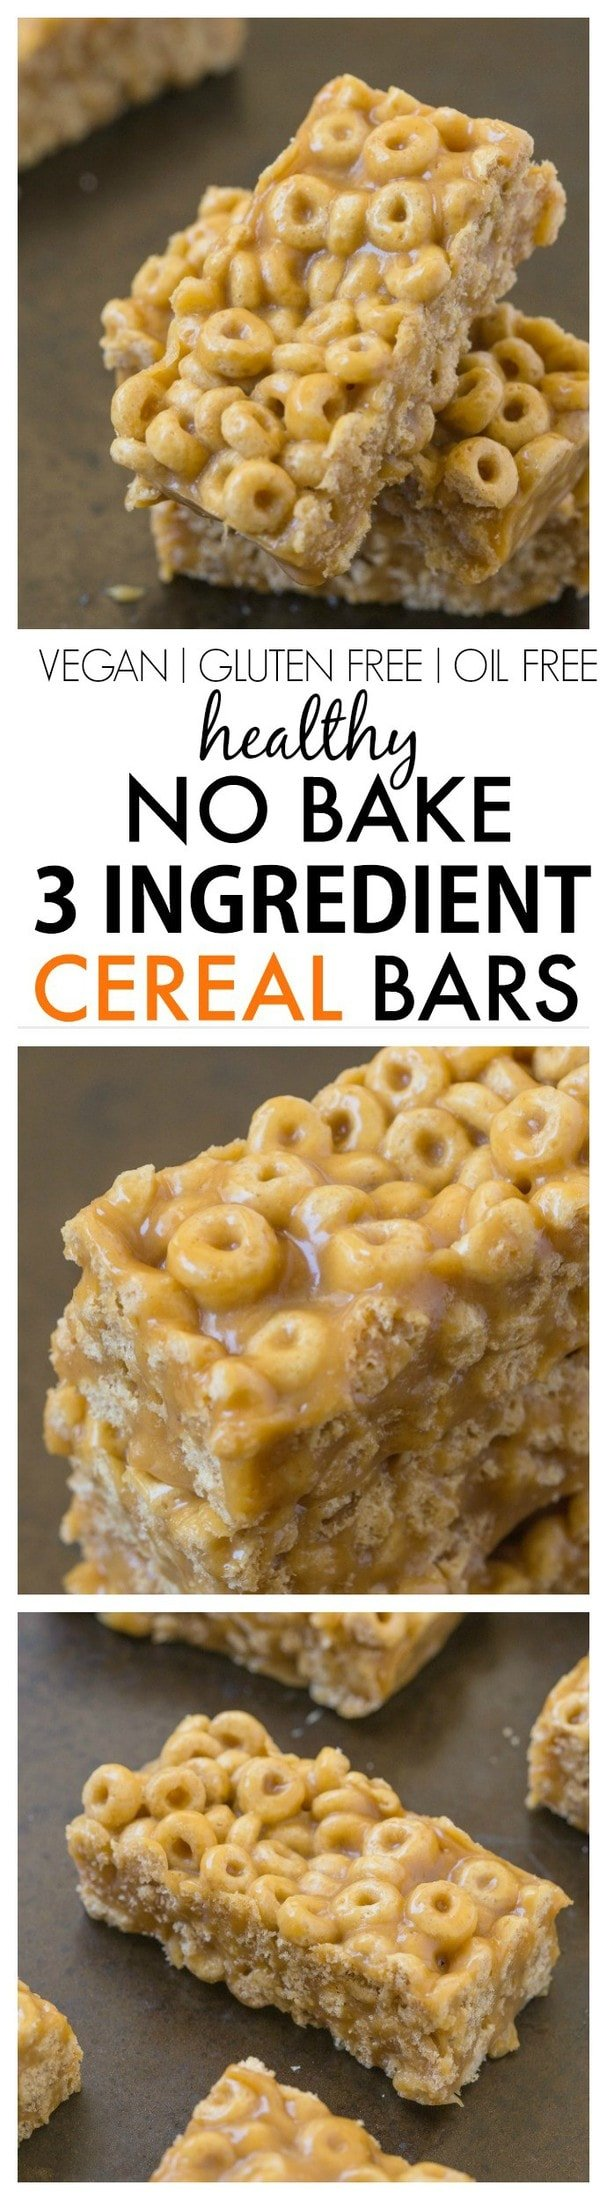 cereal bars with cheerios